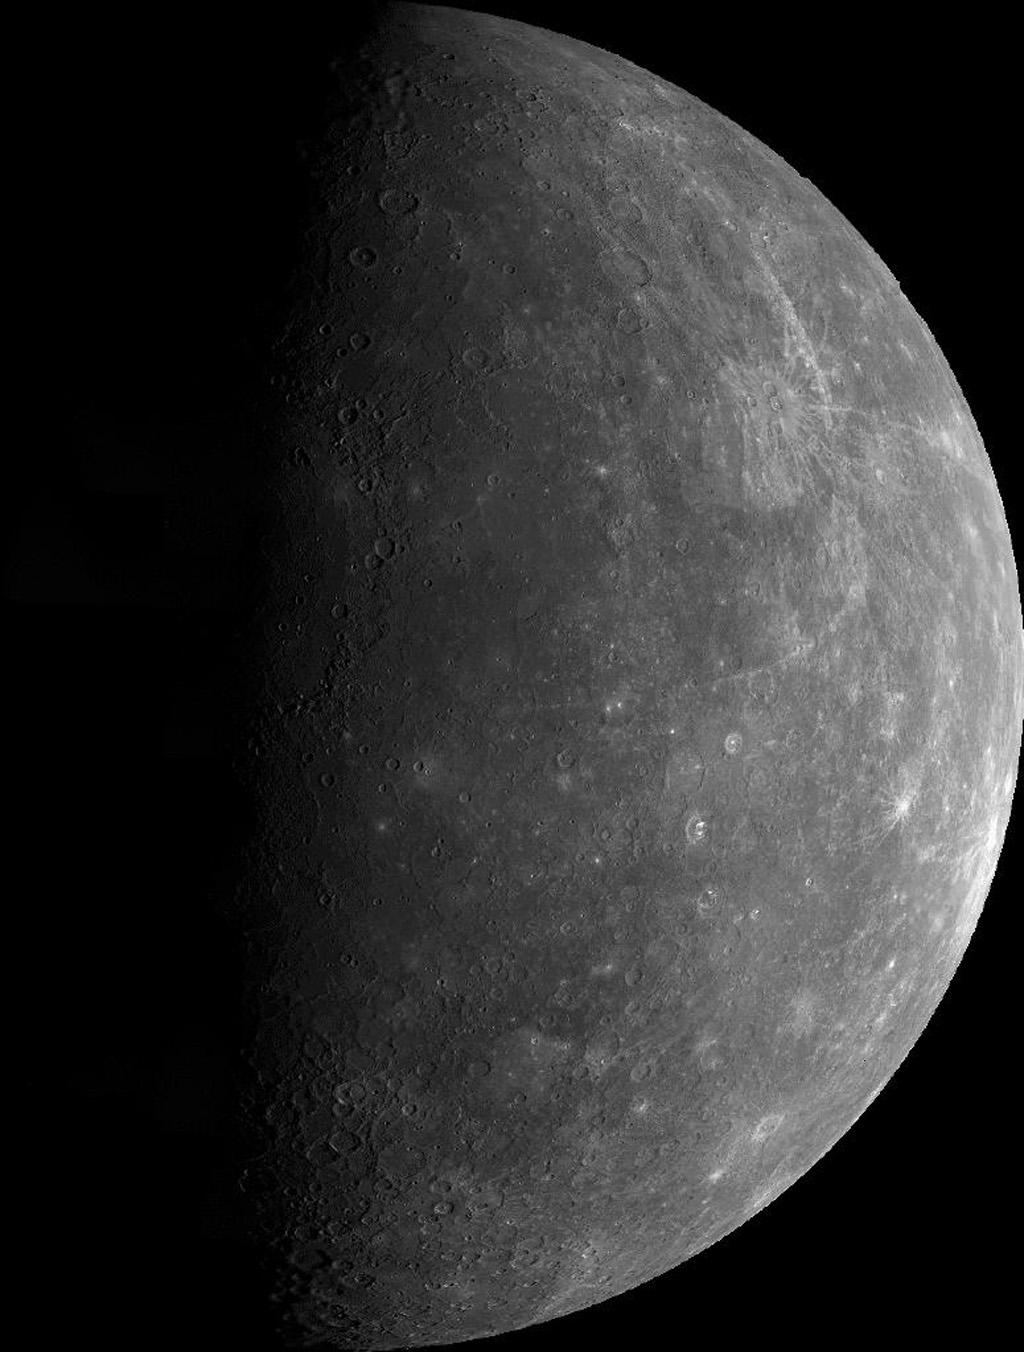 This mosaic, made from over 140 individual TV frames taken about two hours after encounter, shows the planet Mercury as seen by NASA's Mariner 10 as it sped away from the planet on March 29, 1974.